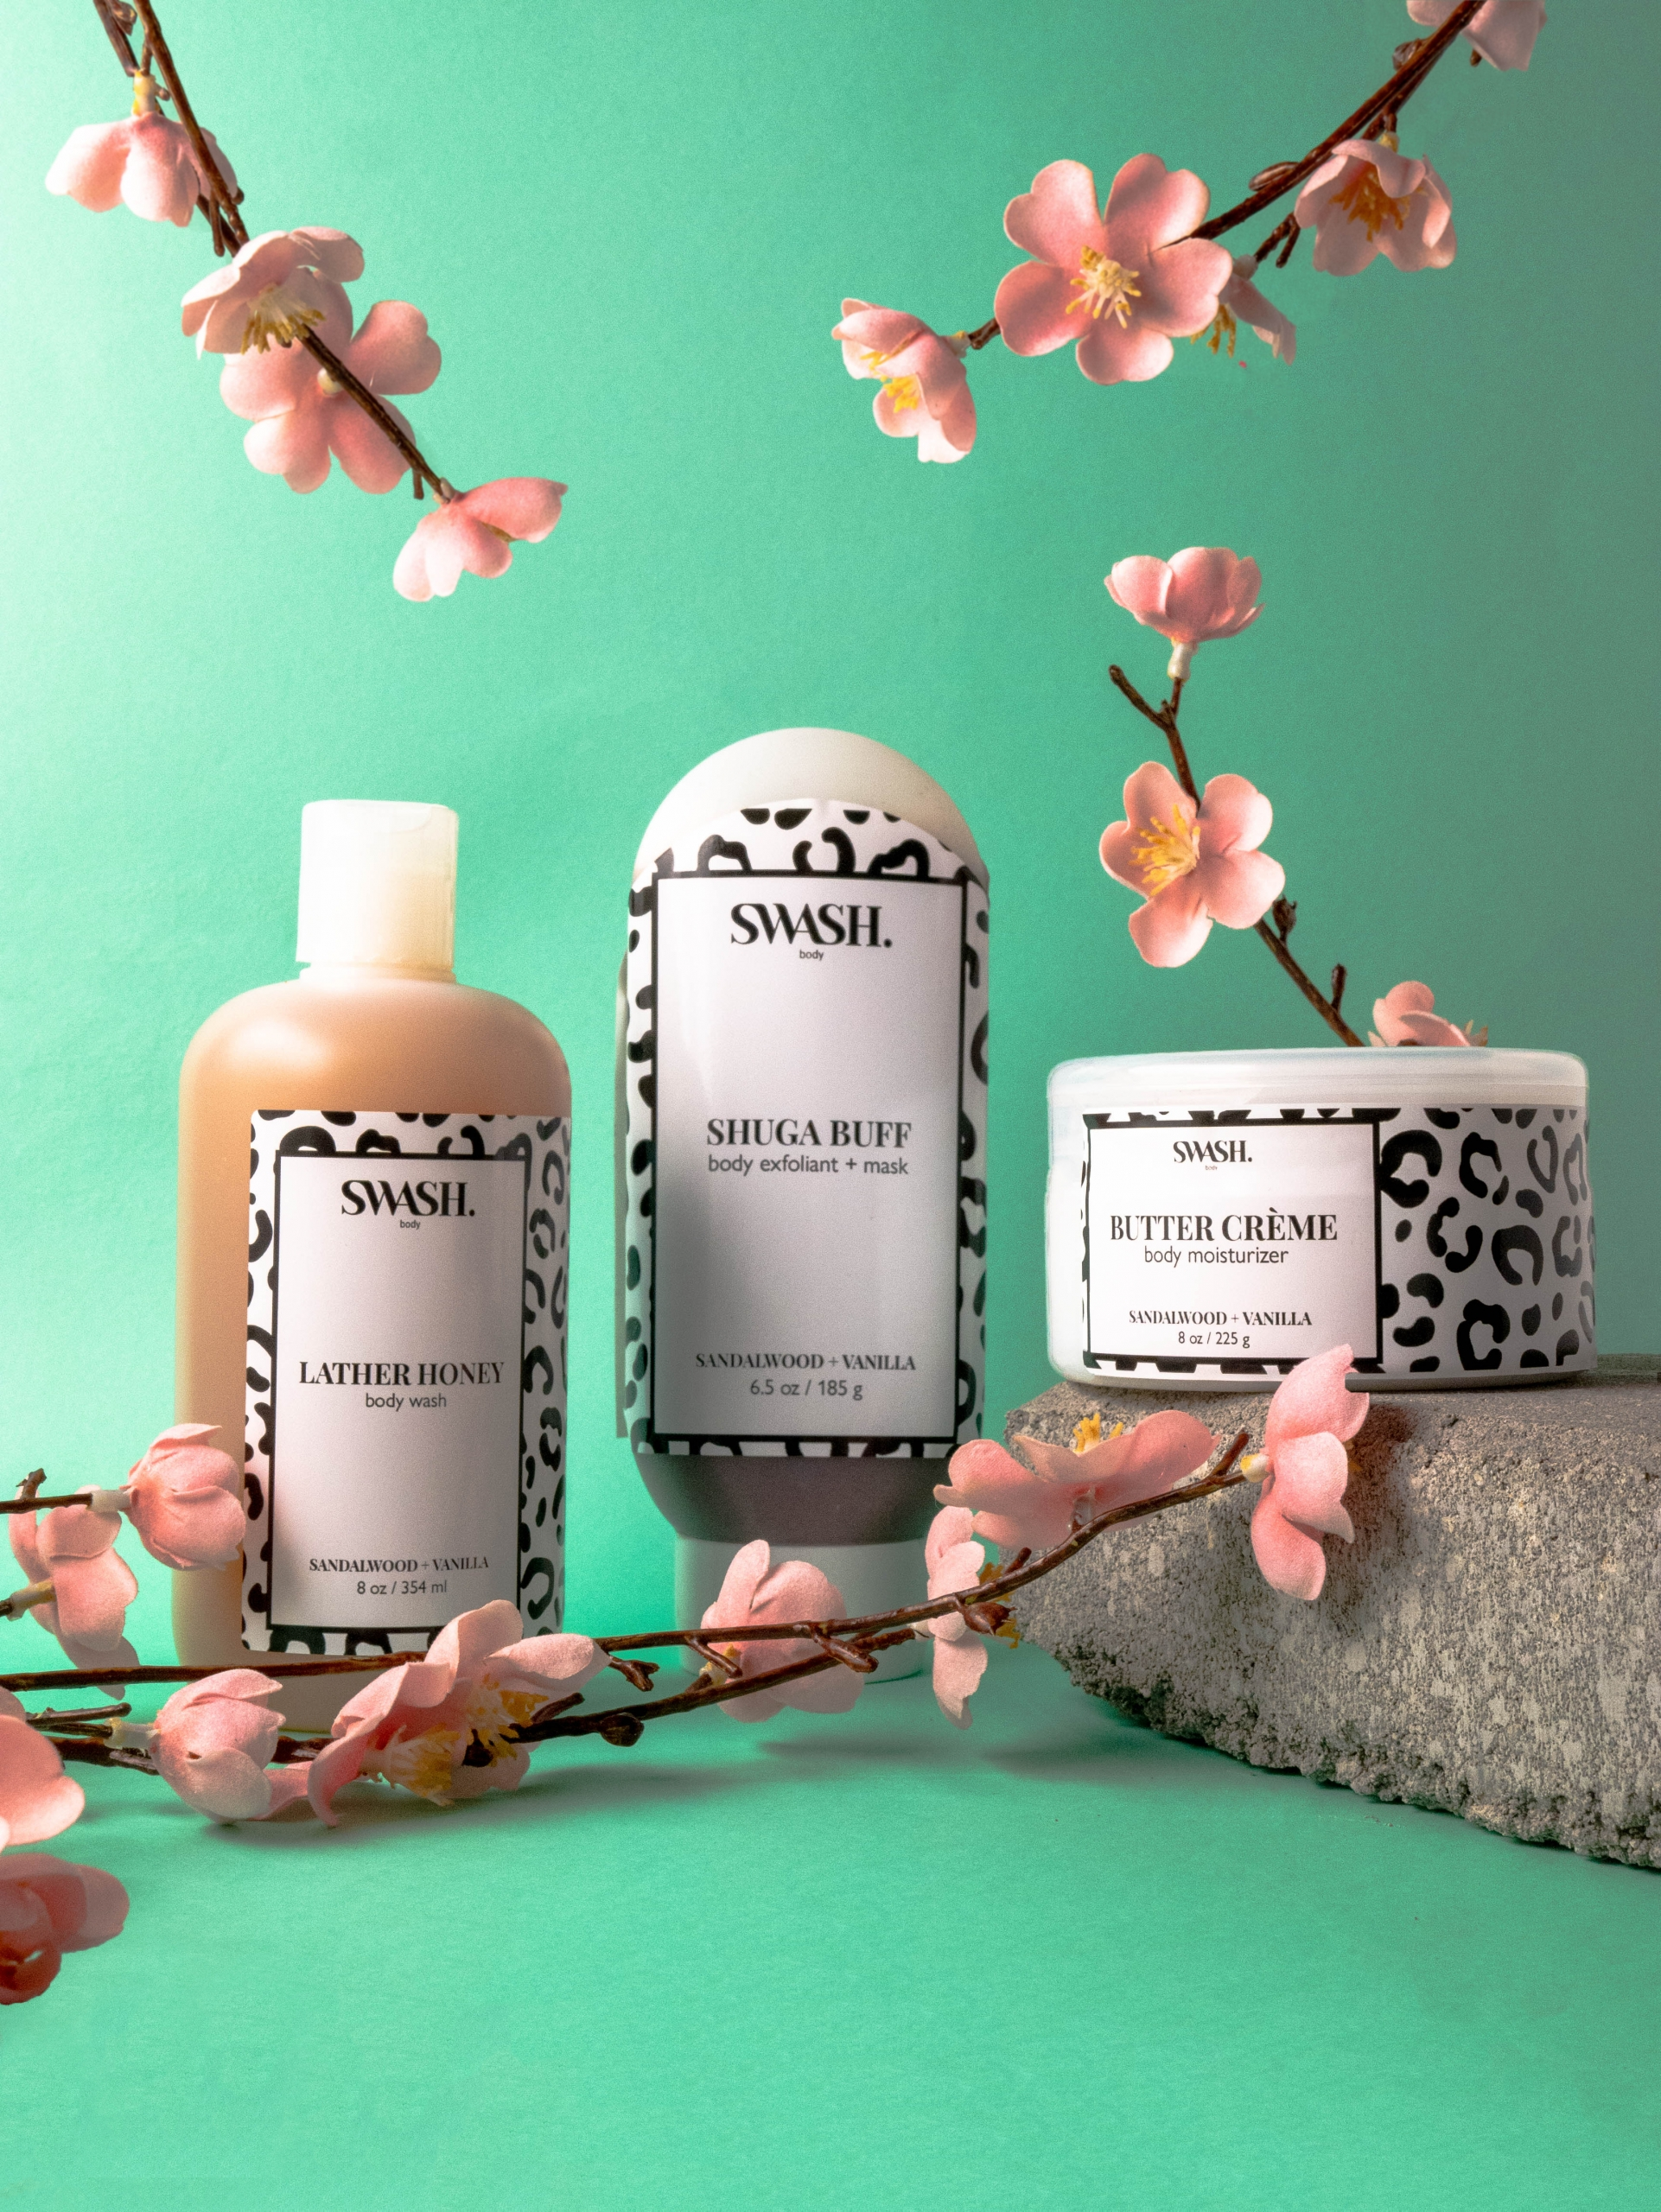 Image of SWASH skincare products displayed with cherry blossoms in front of a blue-green background